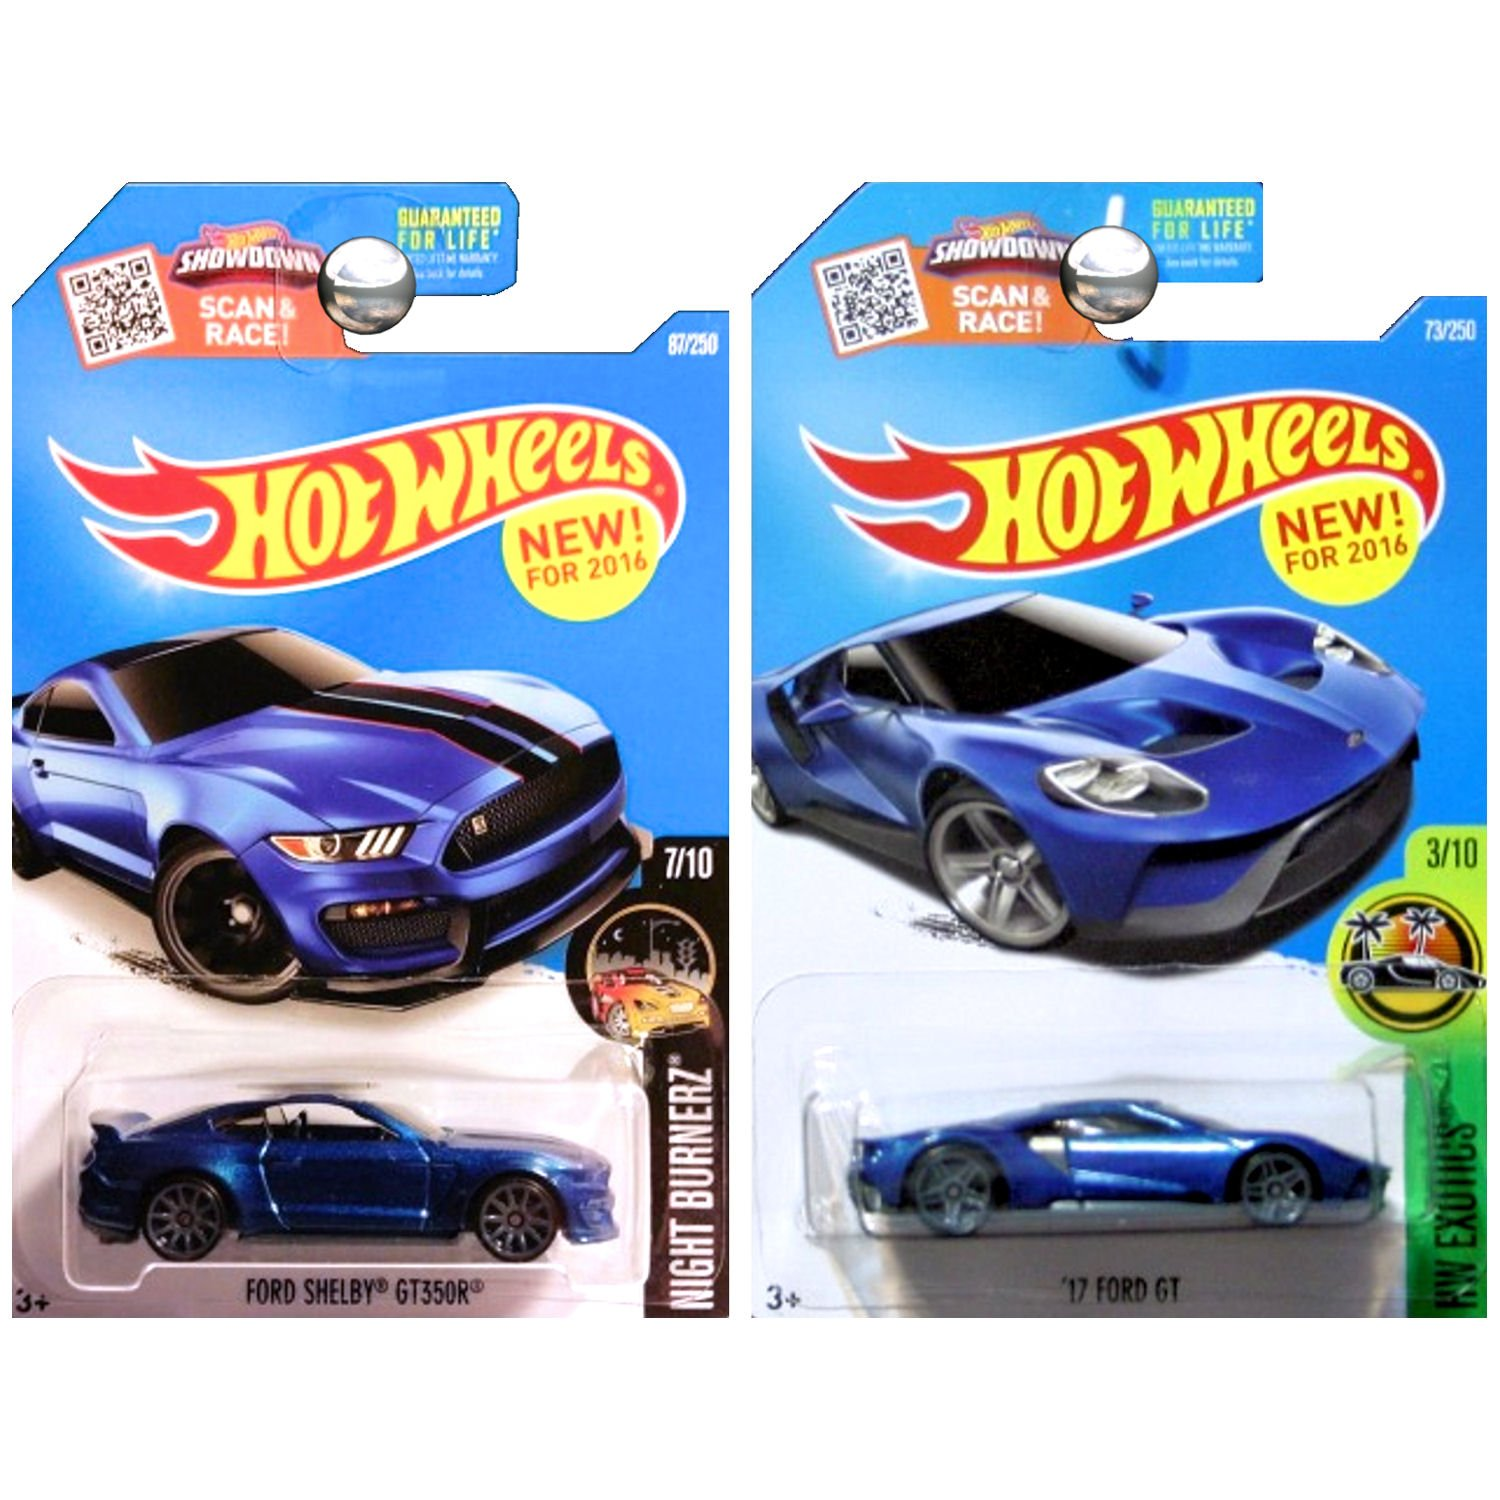 Amazon com hot wheels 17 ford gt and ford mustang shelby gt350 gt350r in blue set of 2 toys games